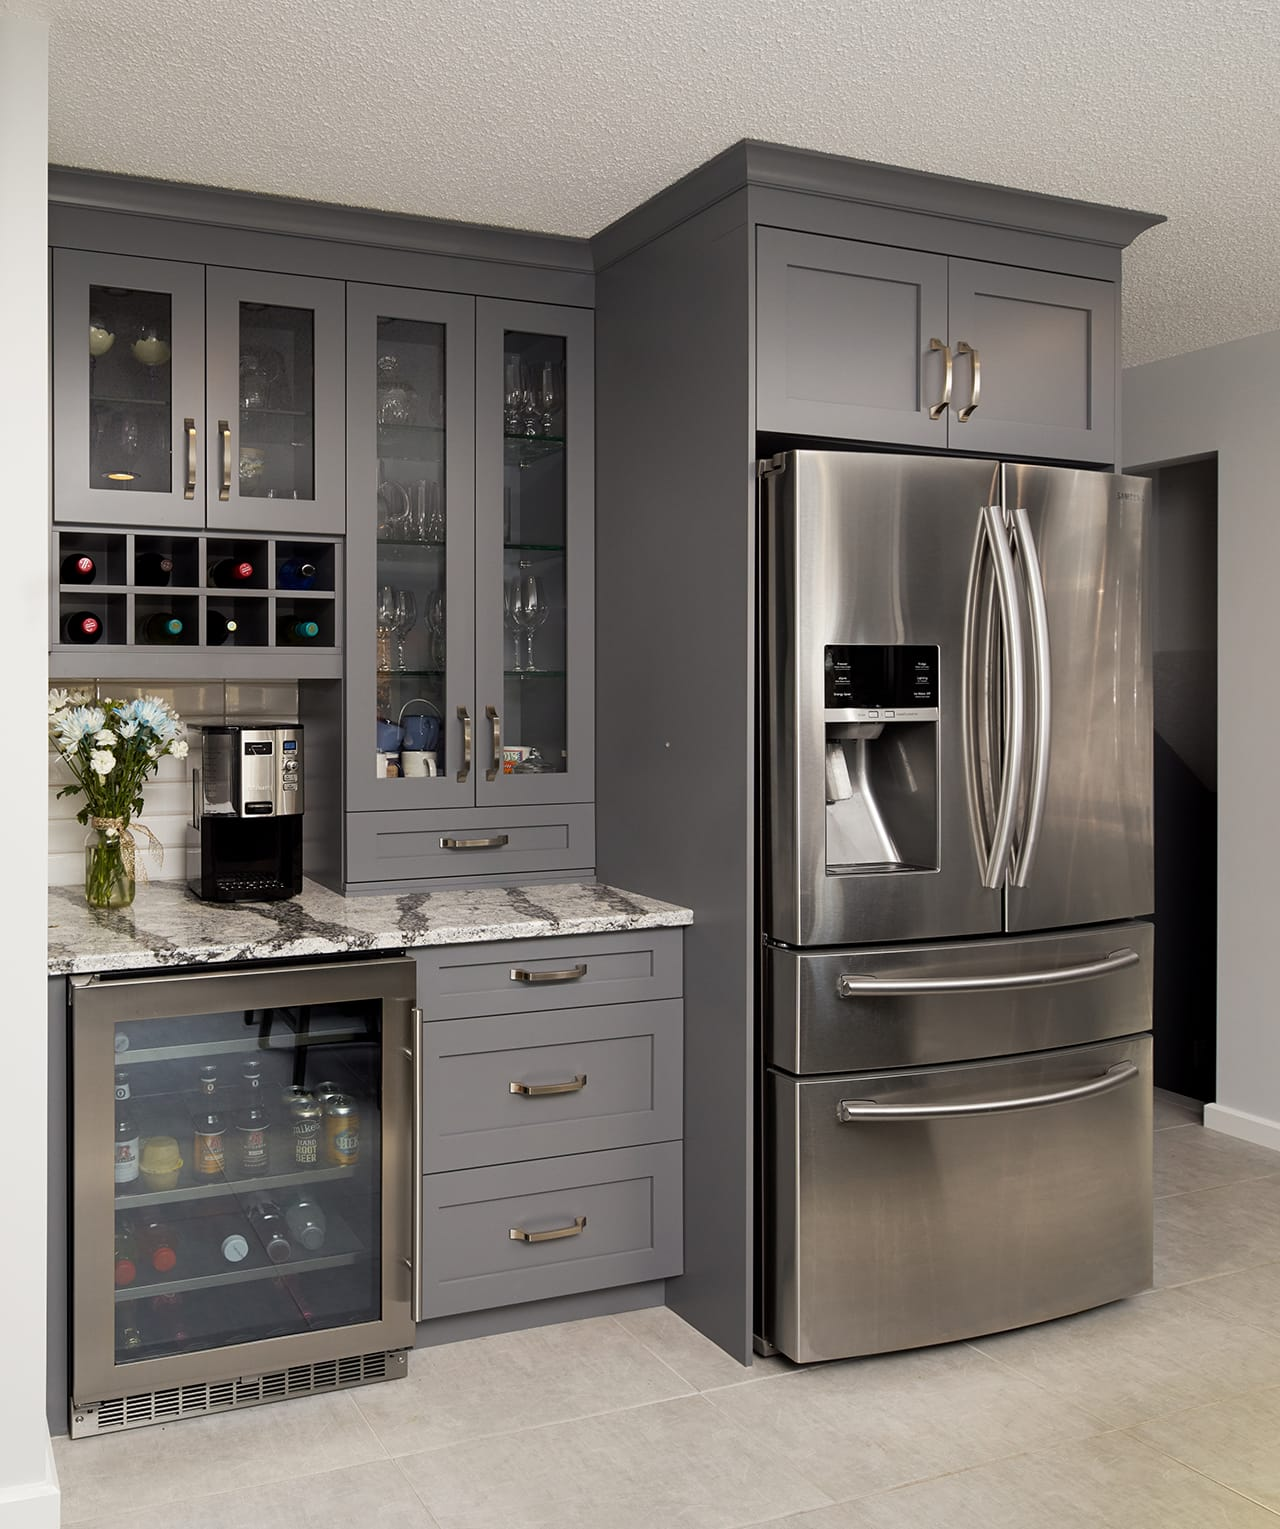 Design brief welcoming two tone transitional kitchen legacy kitchens news for Kitchen design brief example